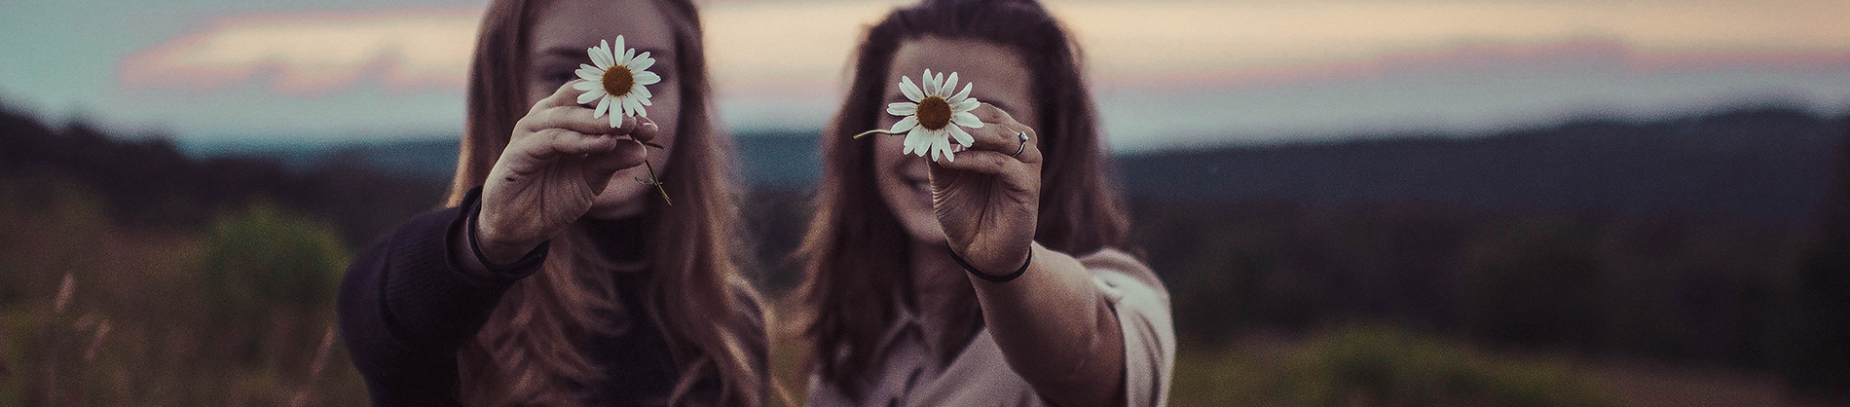 Two girls stood in a field holding up flowers in front of their faces